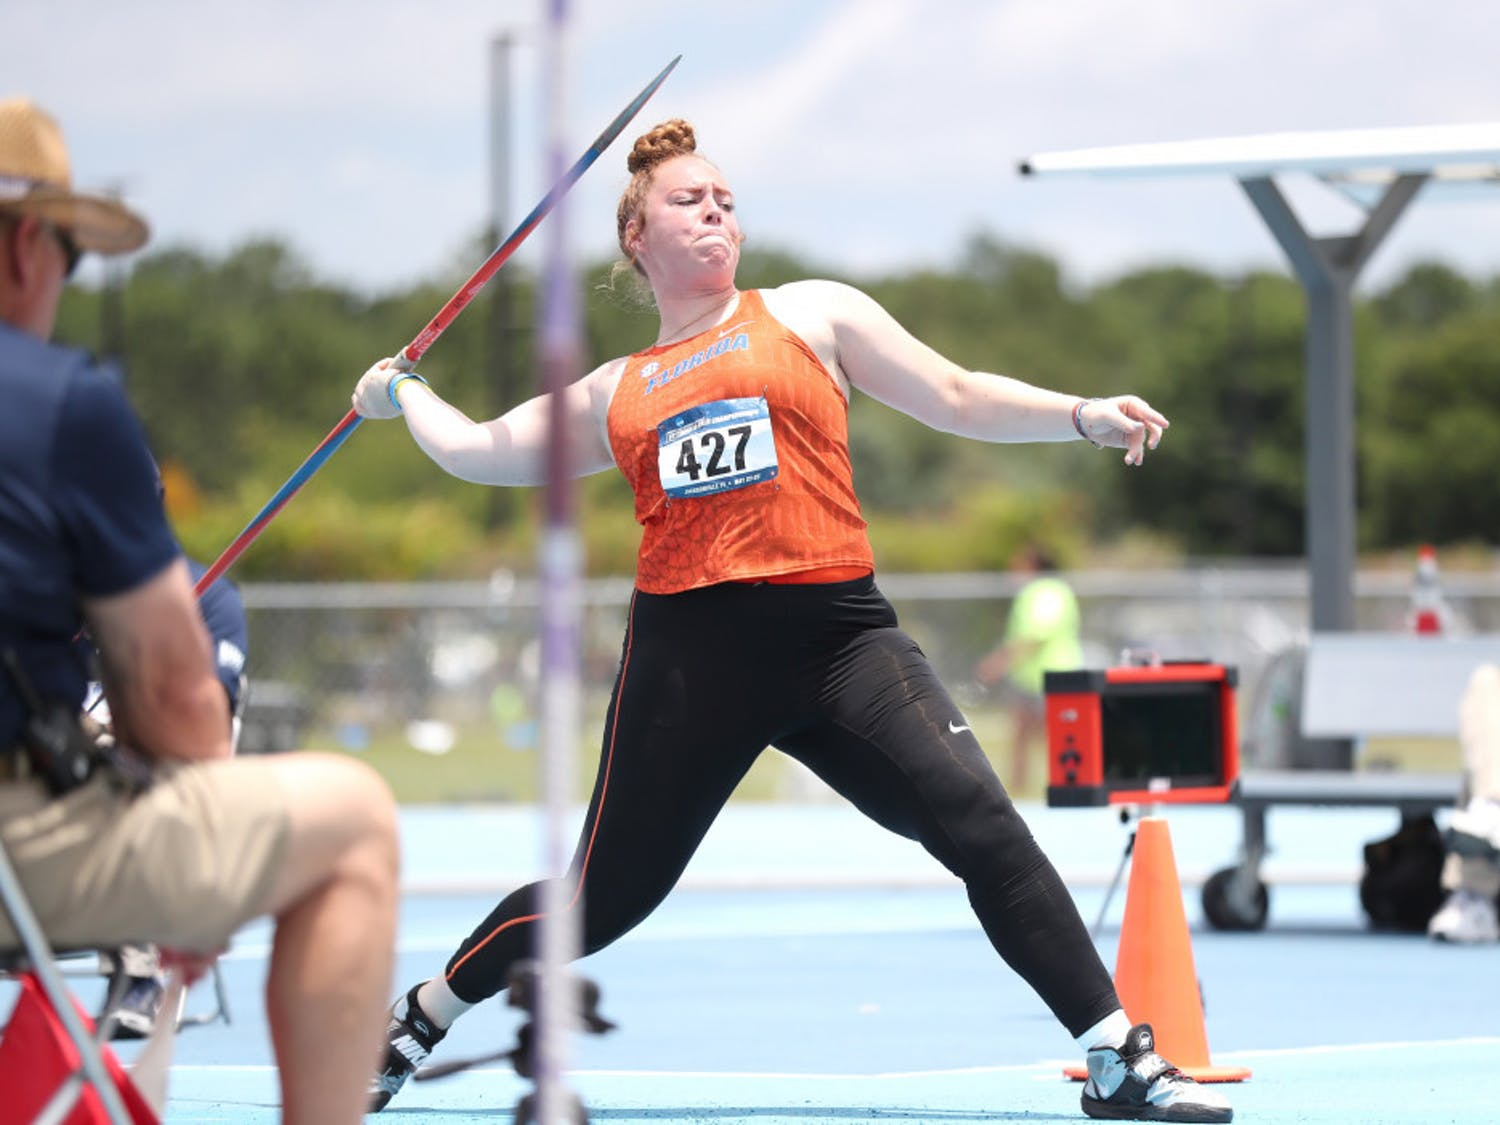 Megan Reed has the seventh best javelin throw in UF history (48.67m).